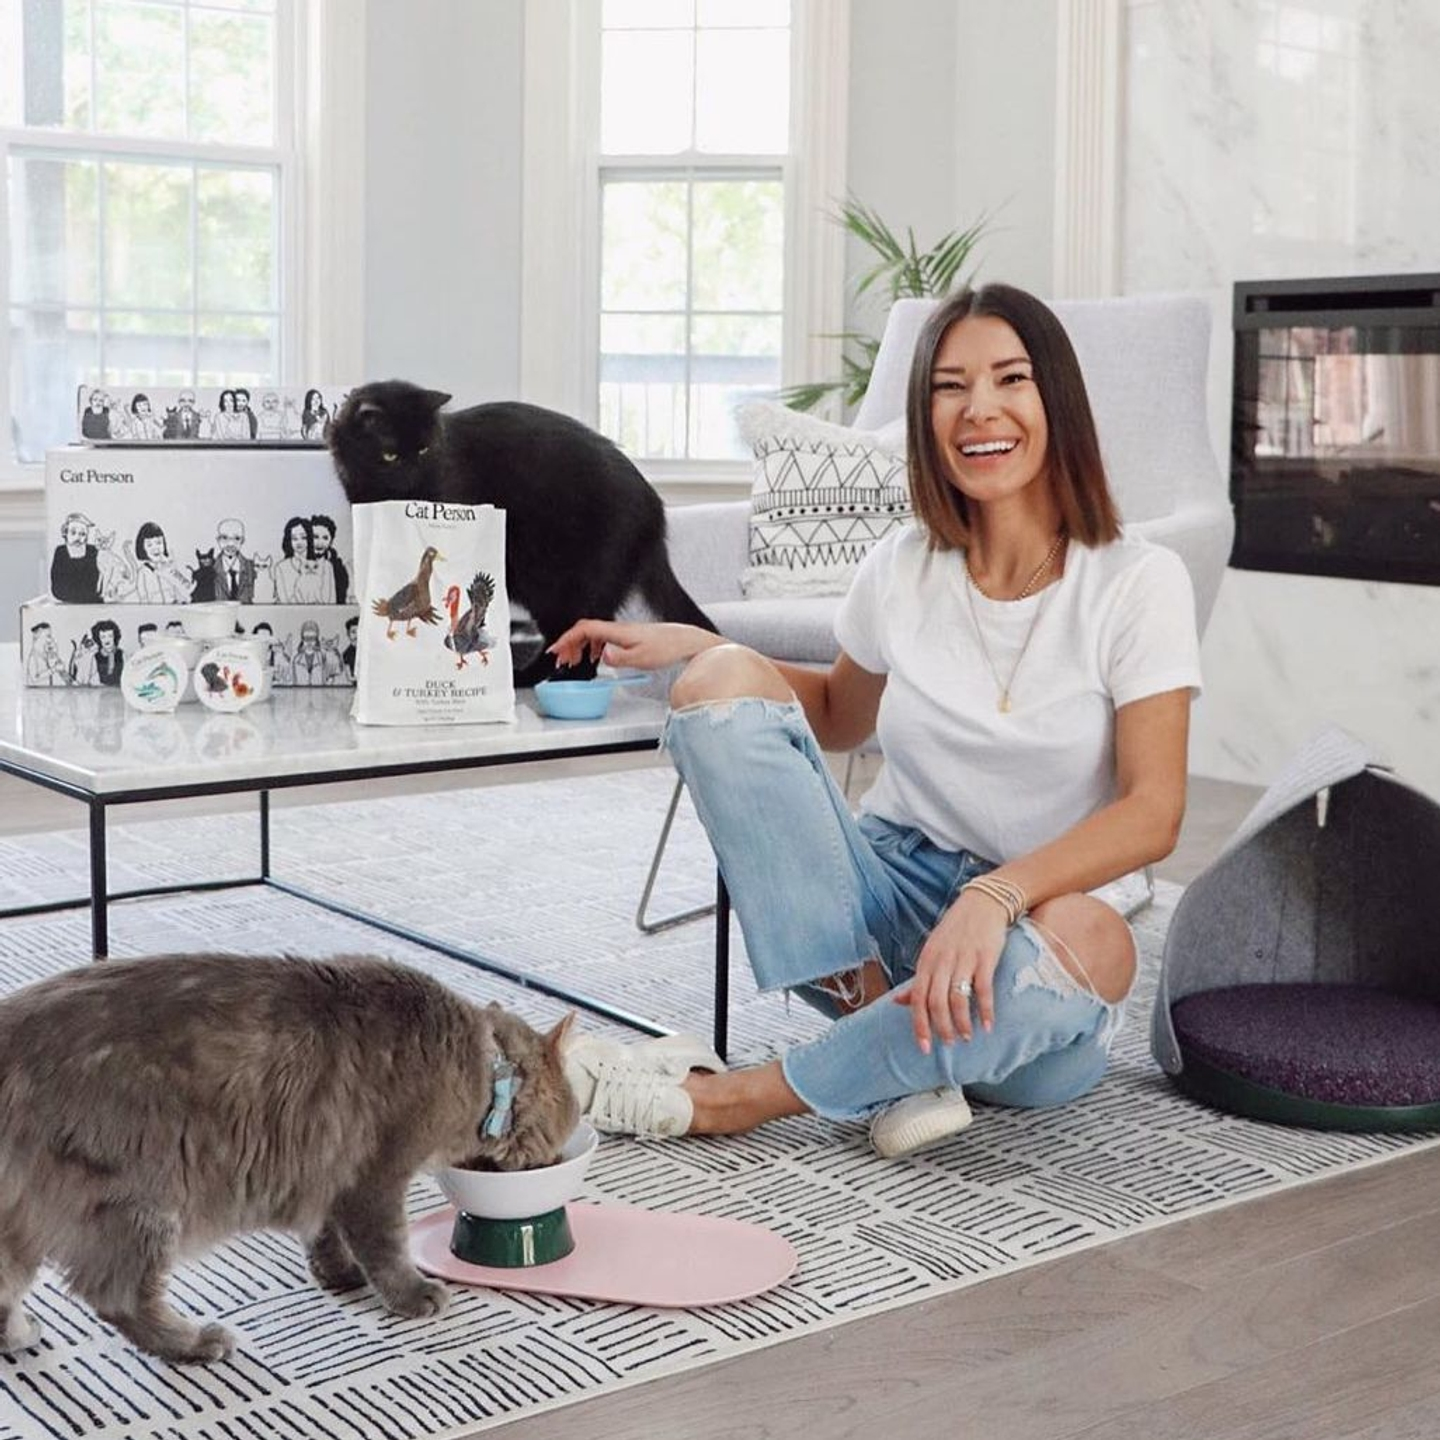 Woman smiling and sitting on floor with two cats